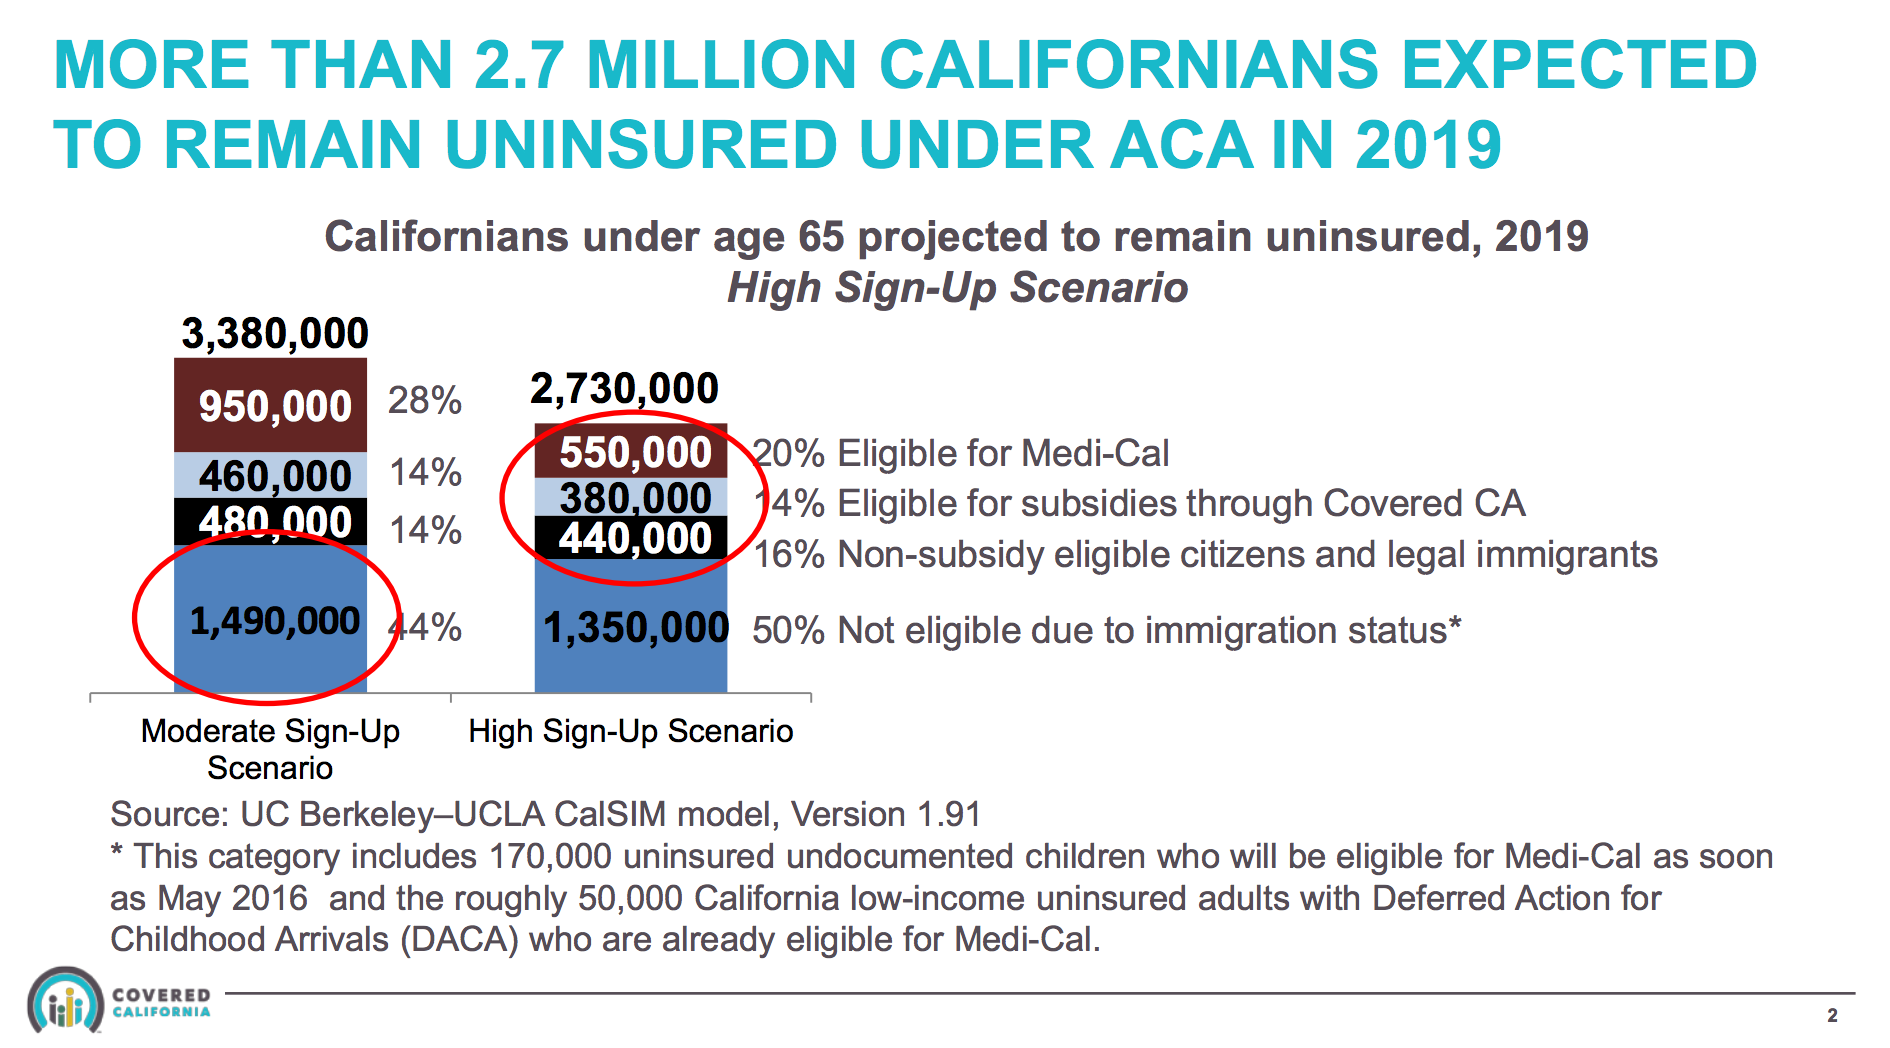 As many as 50% of California's uninsured individuals may be ineligible for health coverage because of their immigration status.